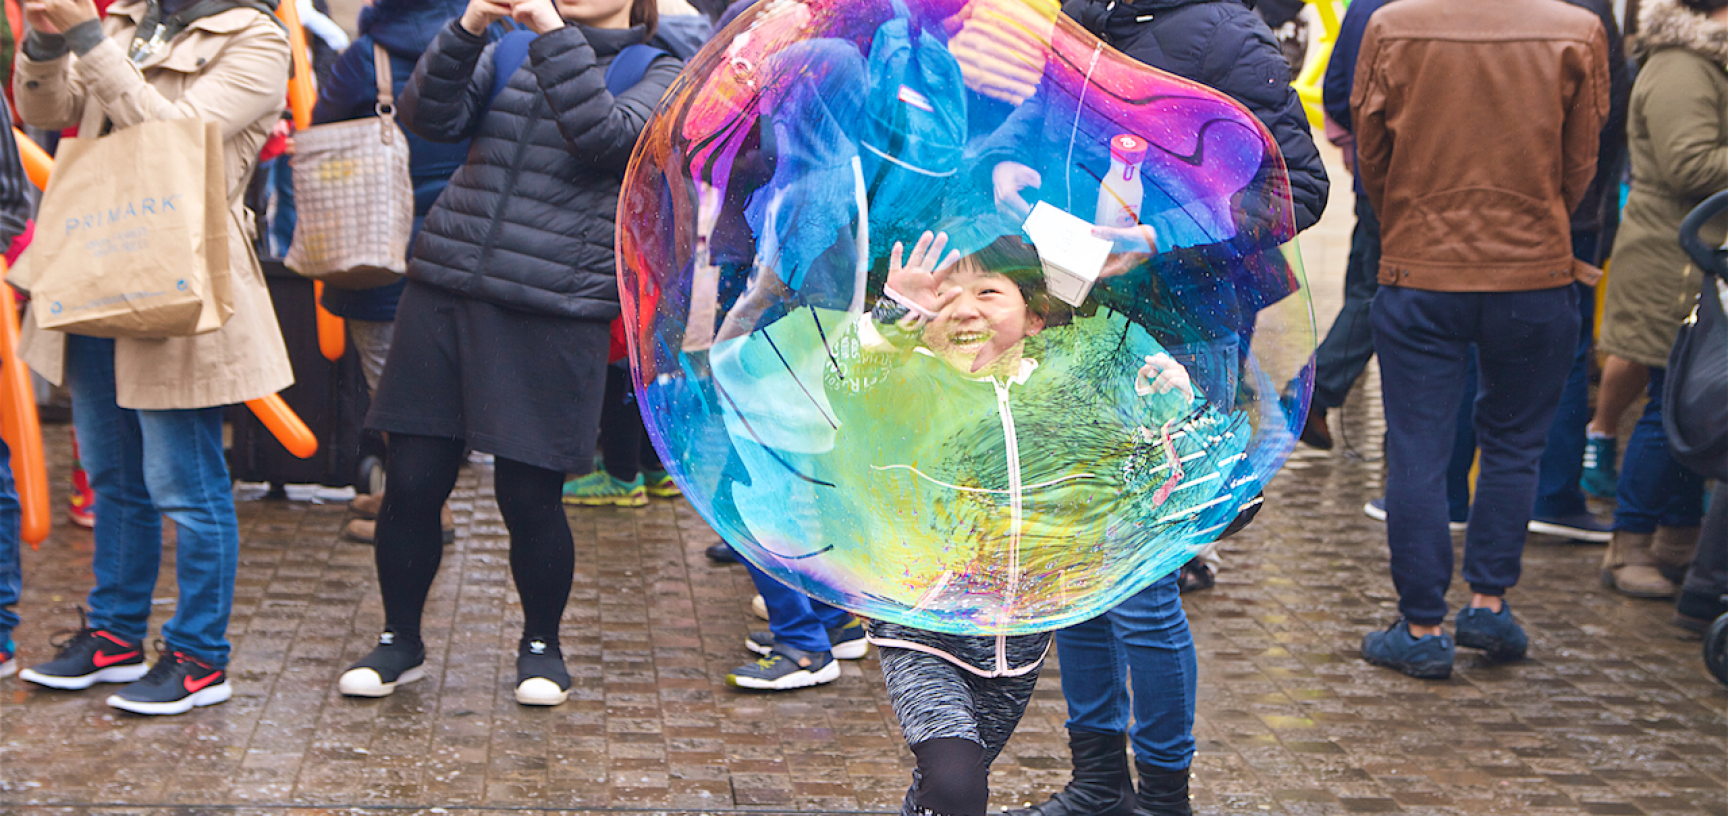 Child chasing a giant bubble